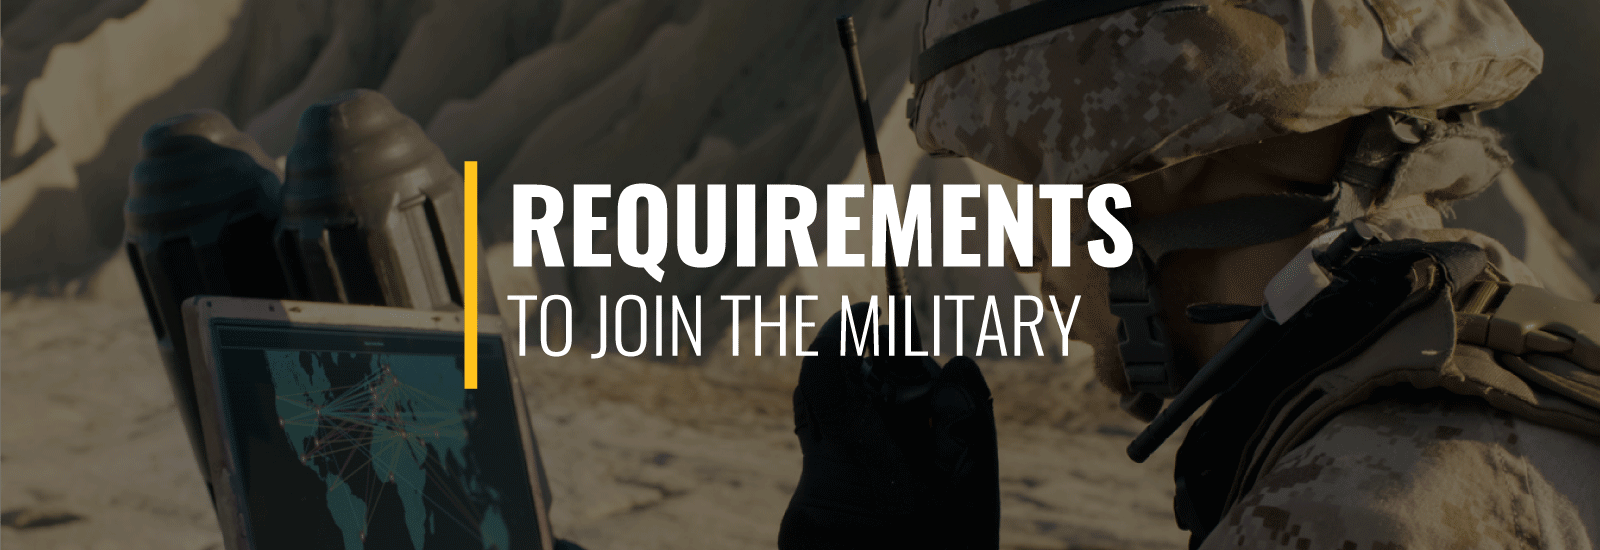 Requirements to Join the Military